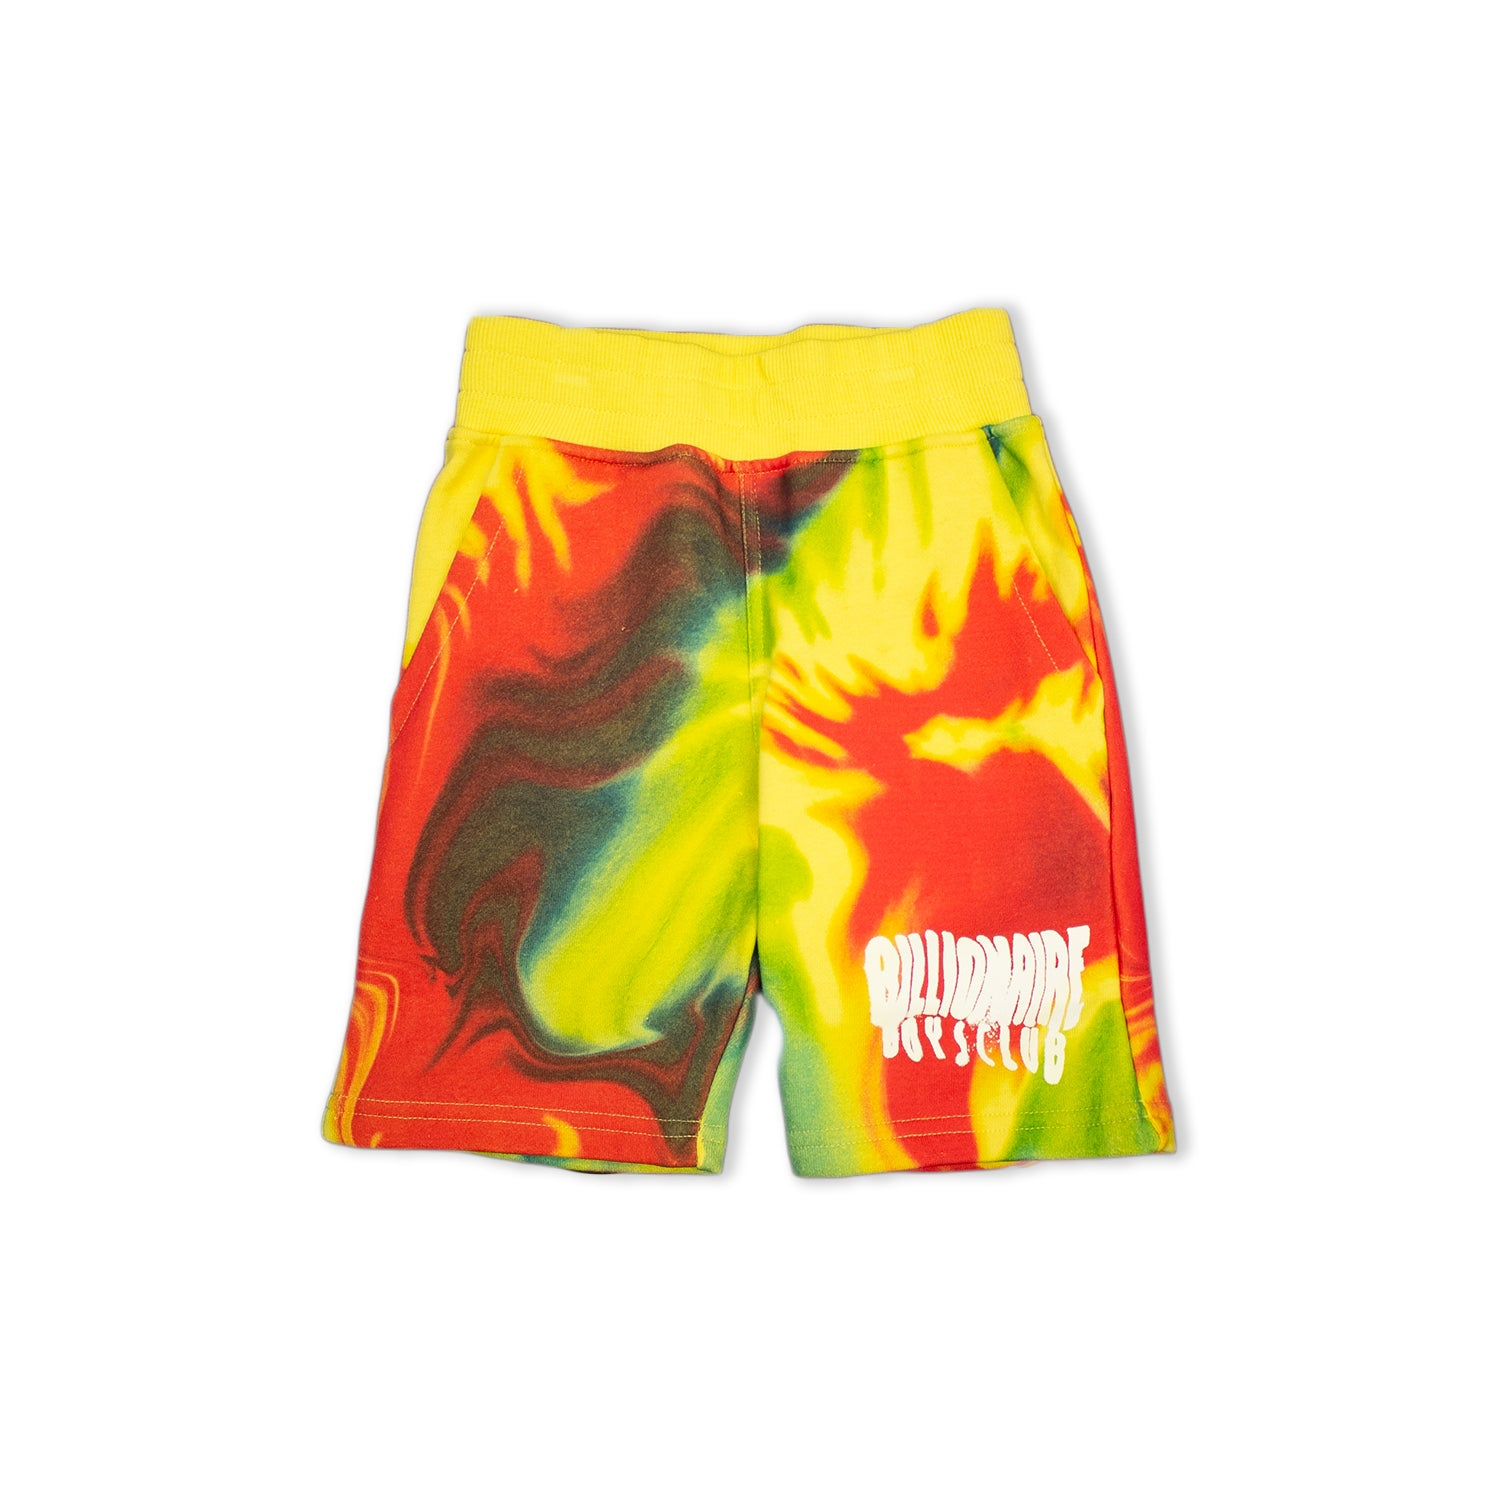 779e8e57d09f1 KIDS ODYSSEY SHORT – Billionaire Boys Club